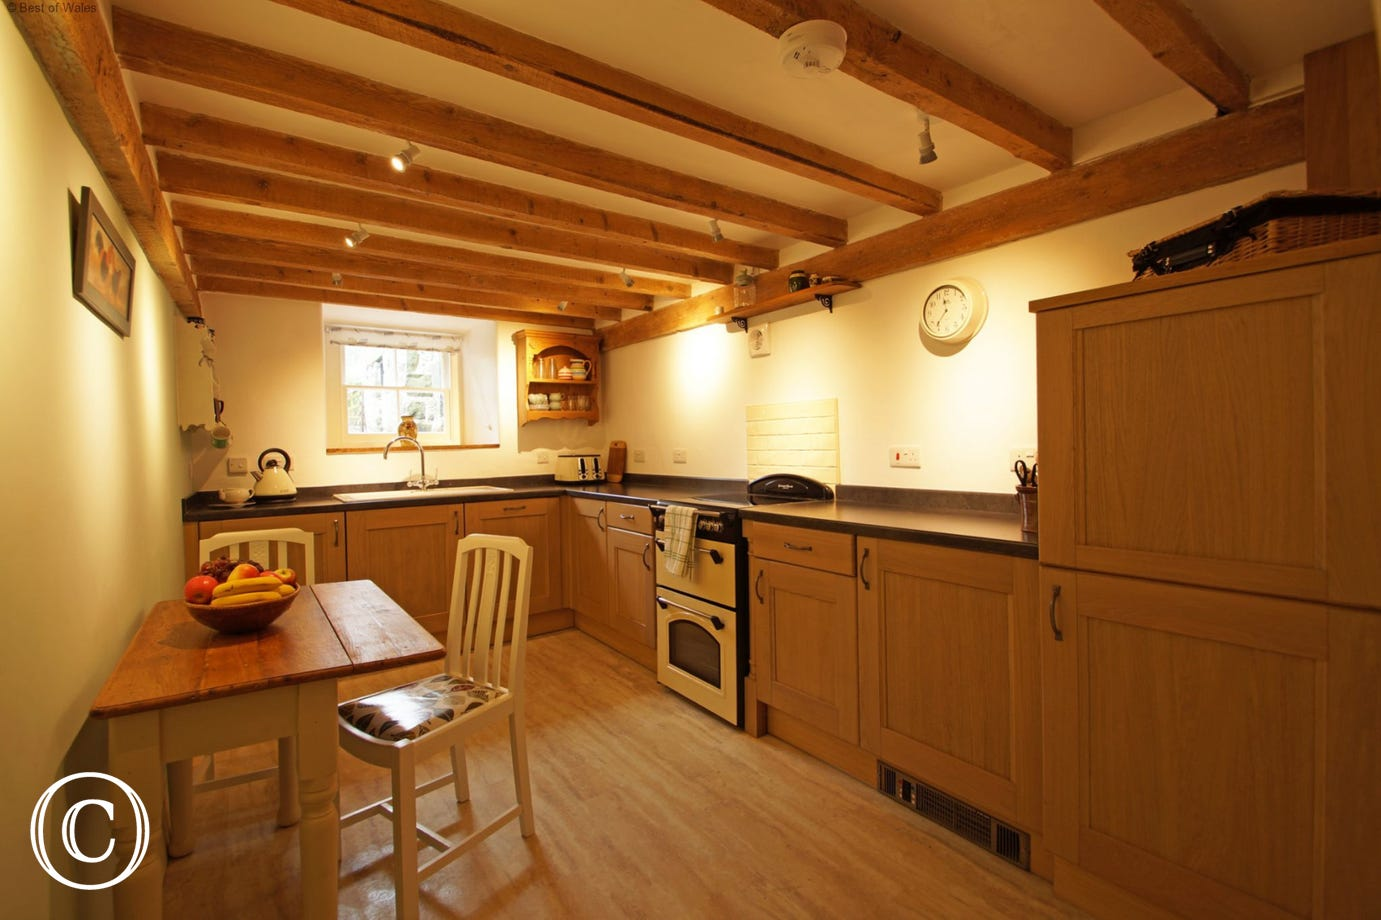 Fully equipped kitchen along with a small table and seating